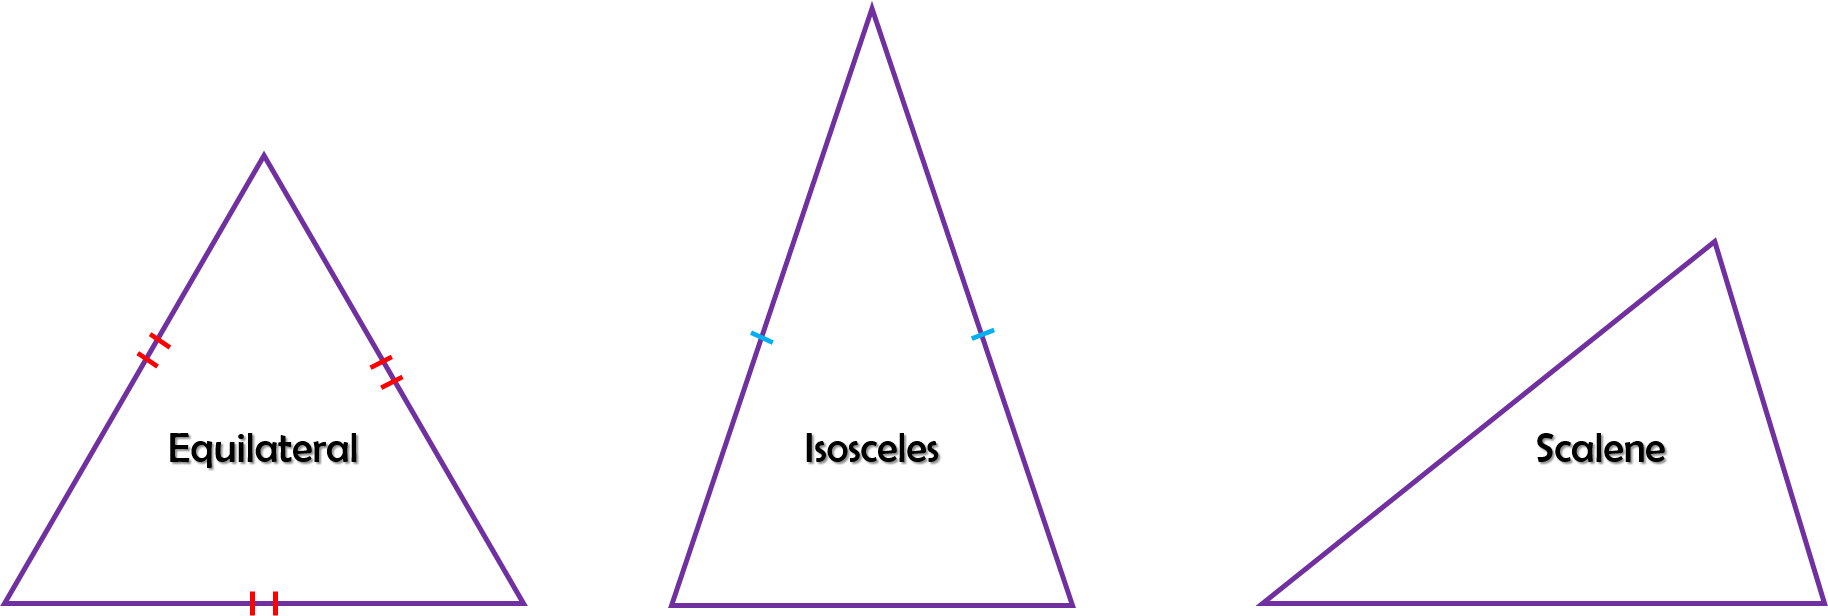 Image showing equilateral, isosceles and scalene triangle_makeageek